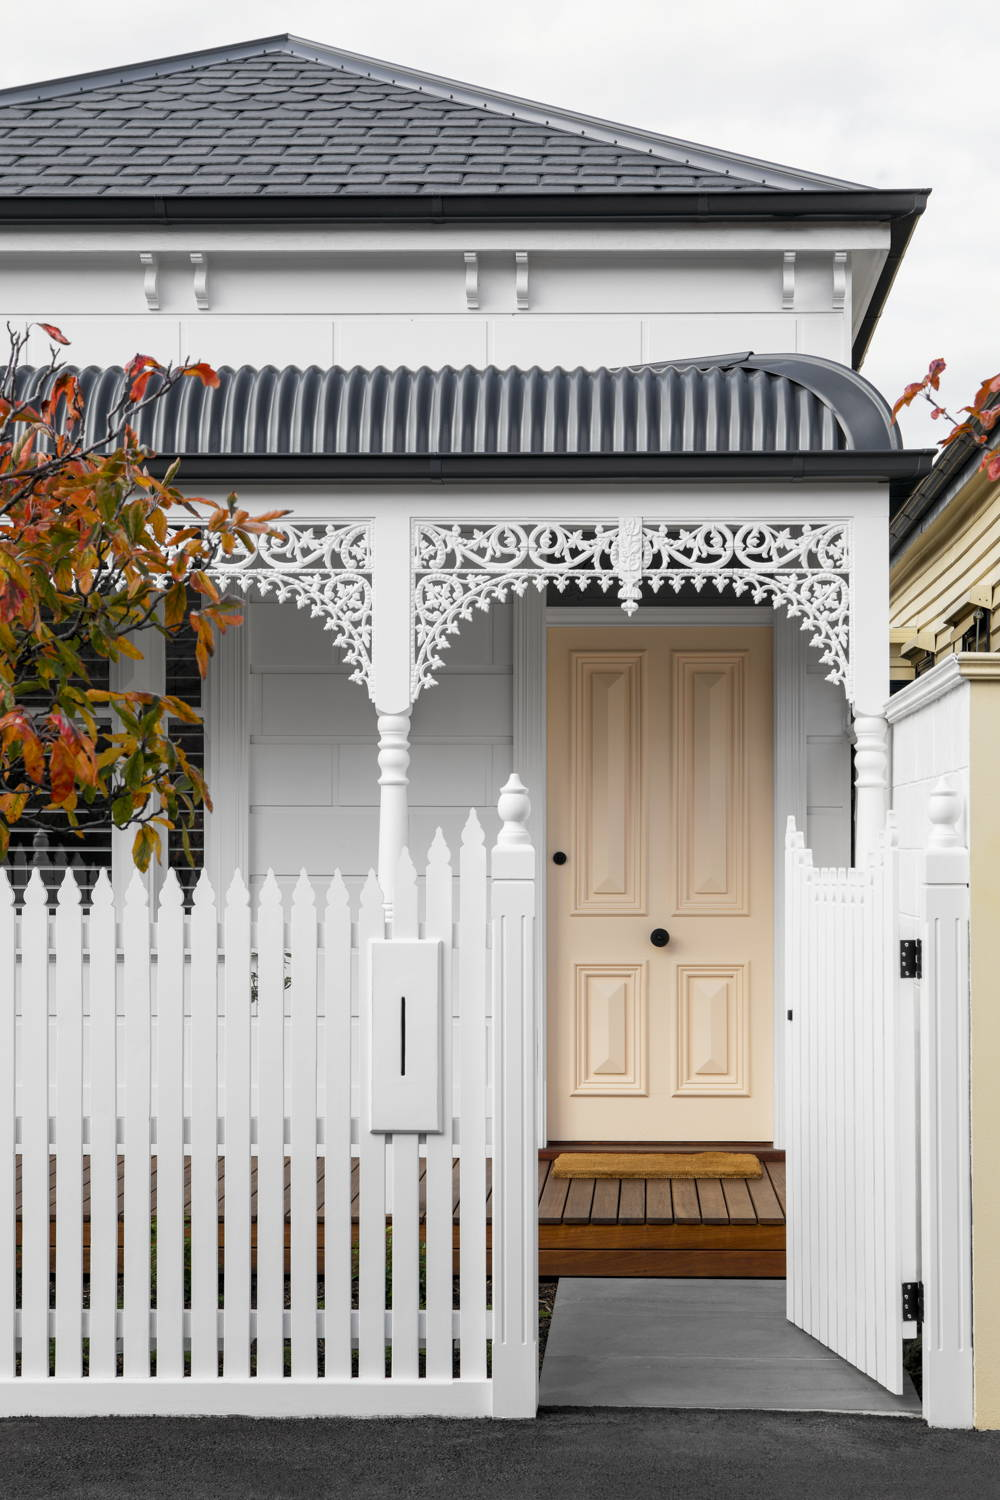 Outside facade of cottage-style home with peach front door